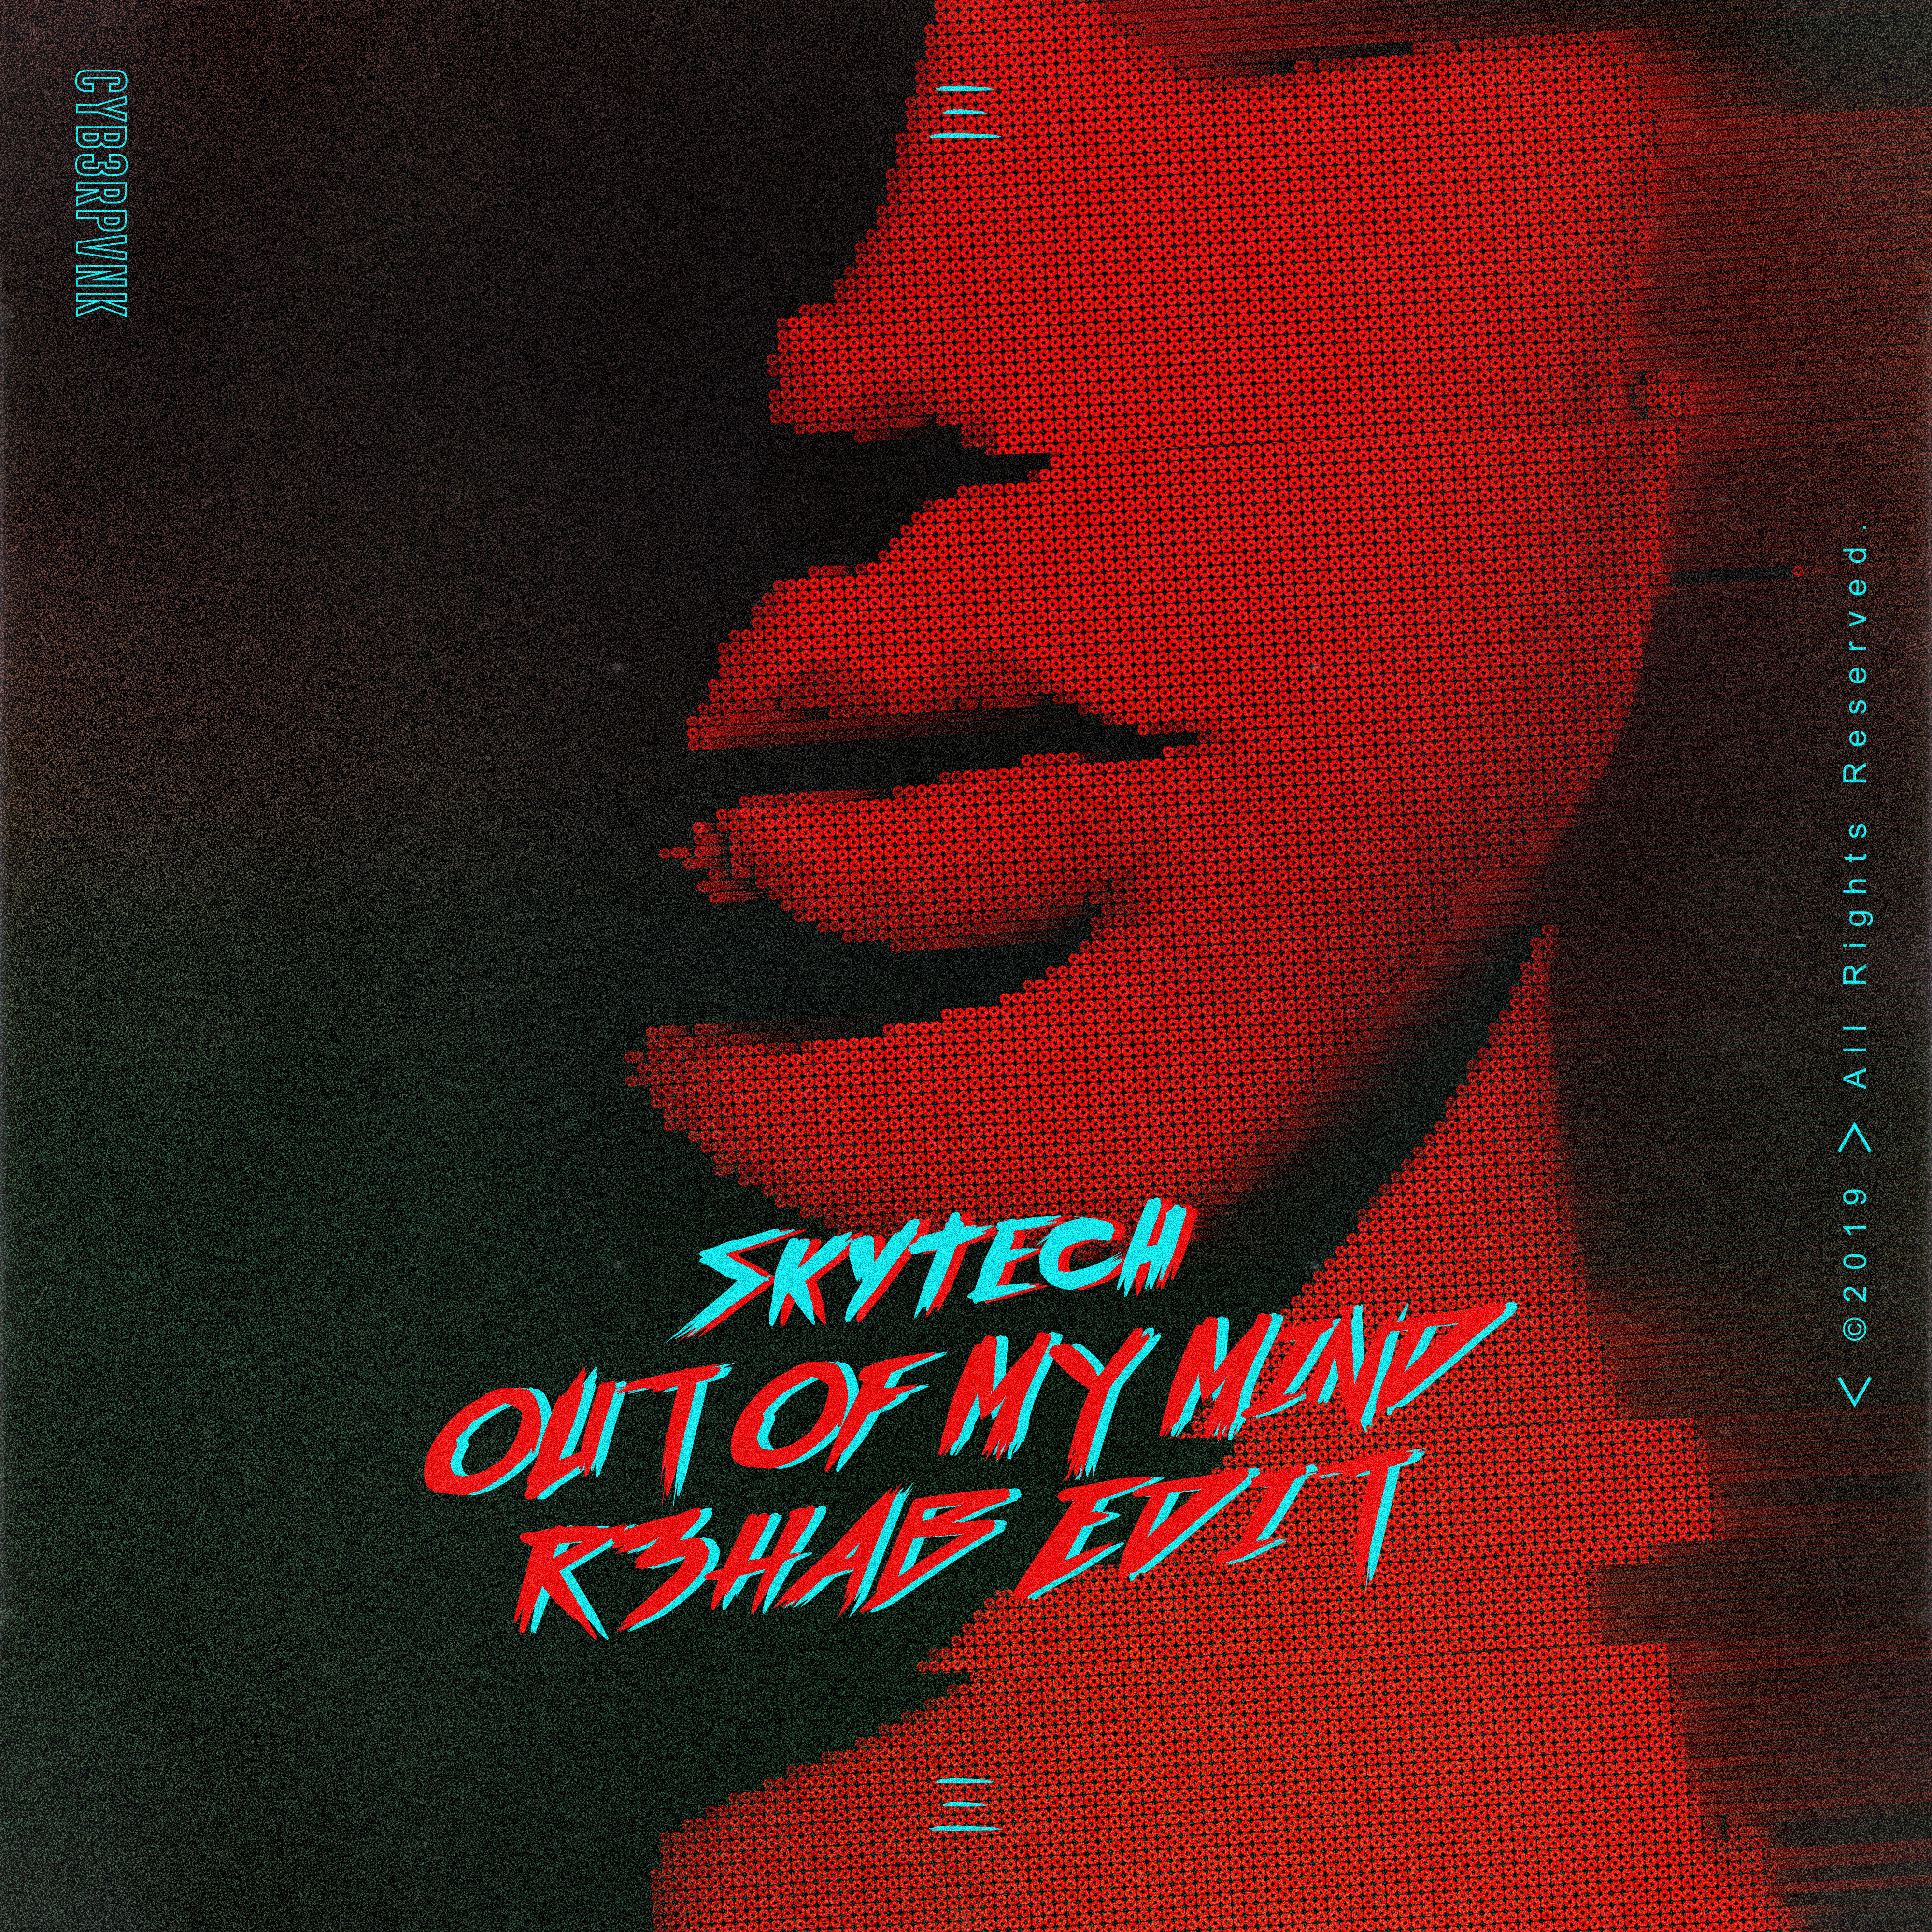 cover_skytech_-_out_of_my_mind_r3hab_edit.jpg